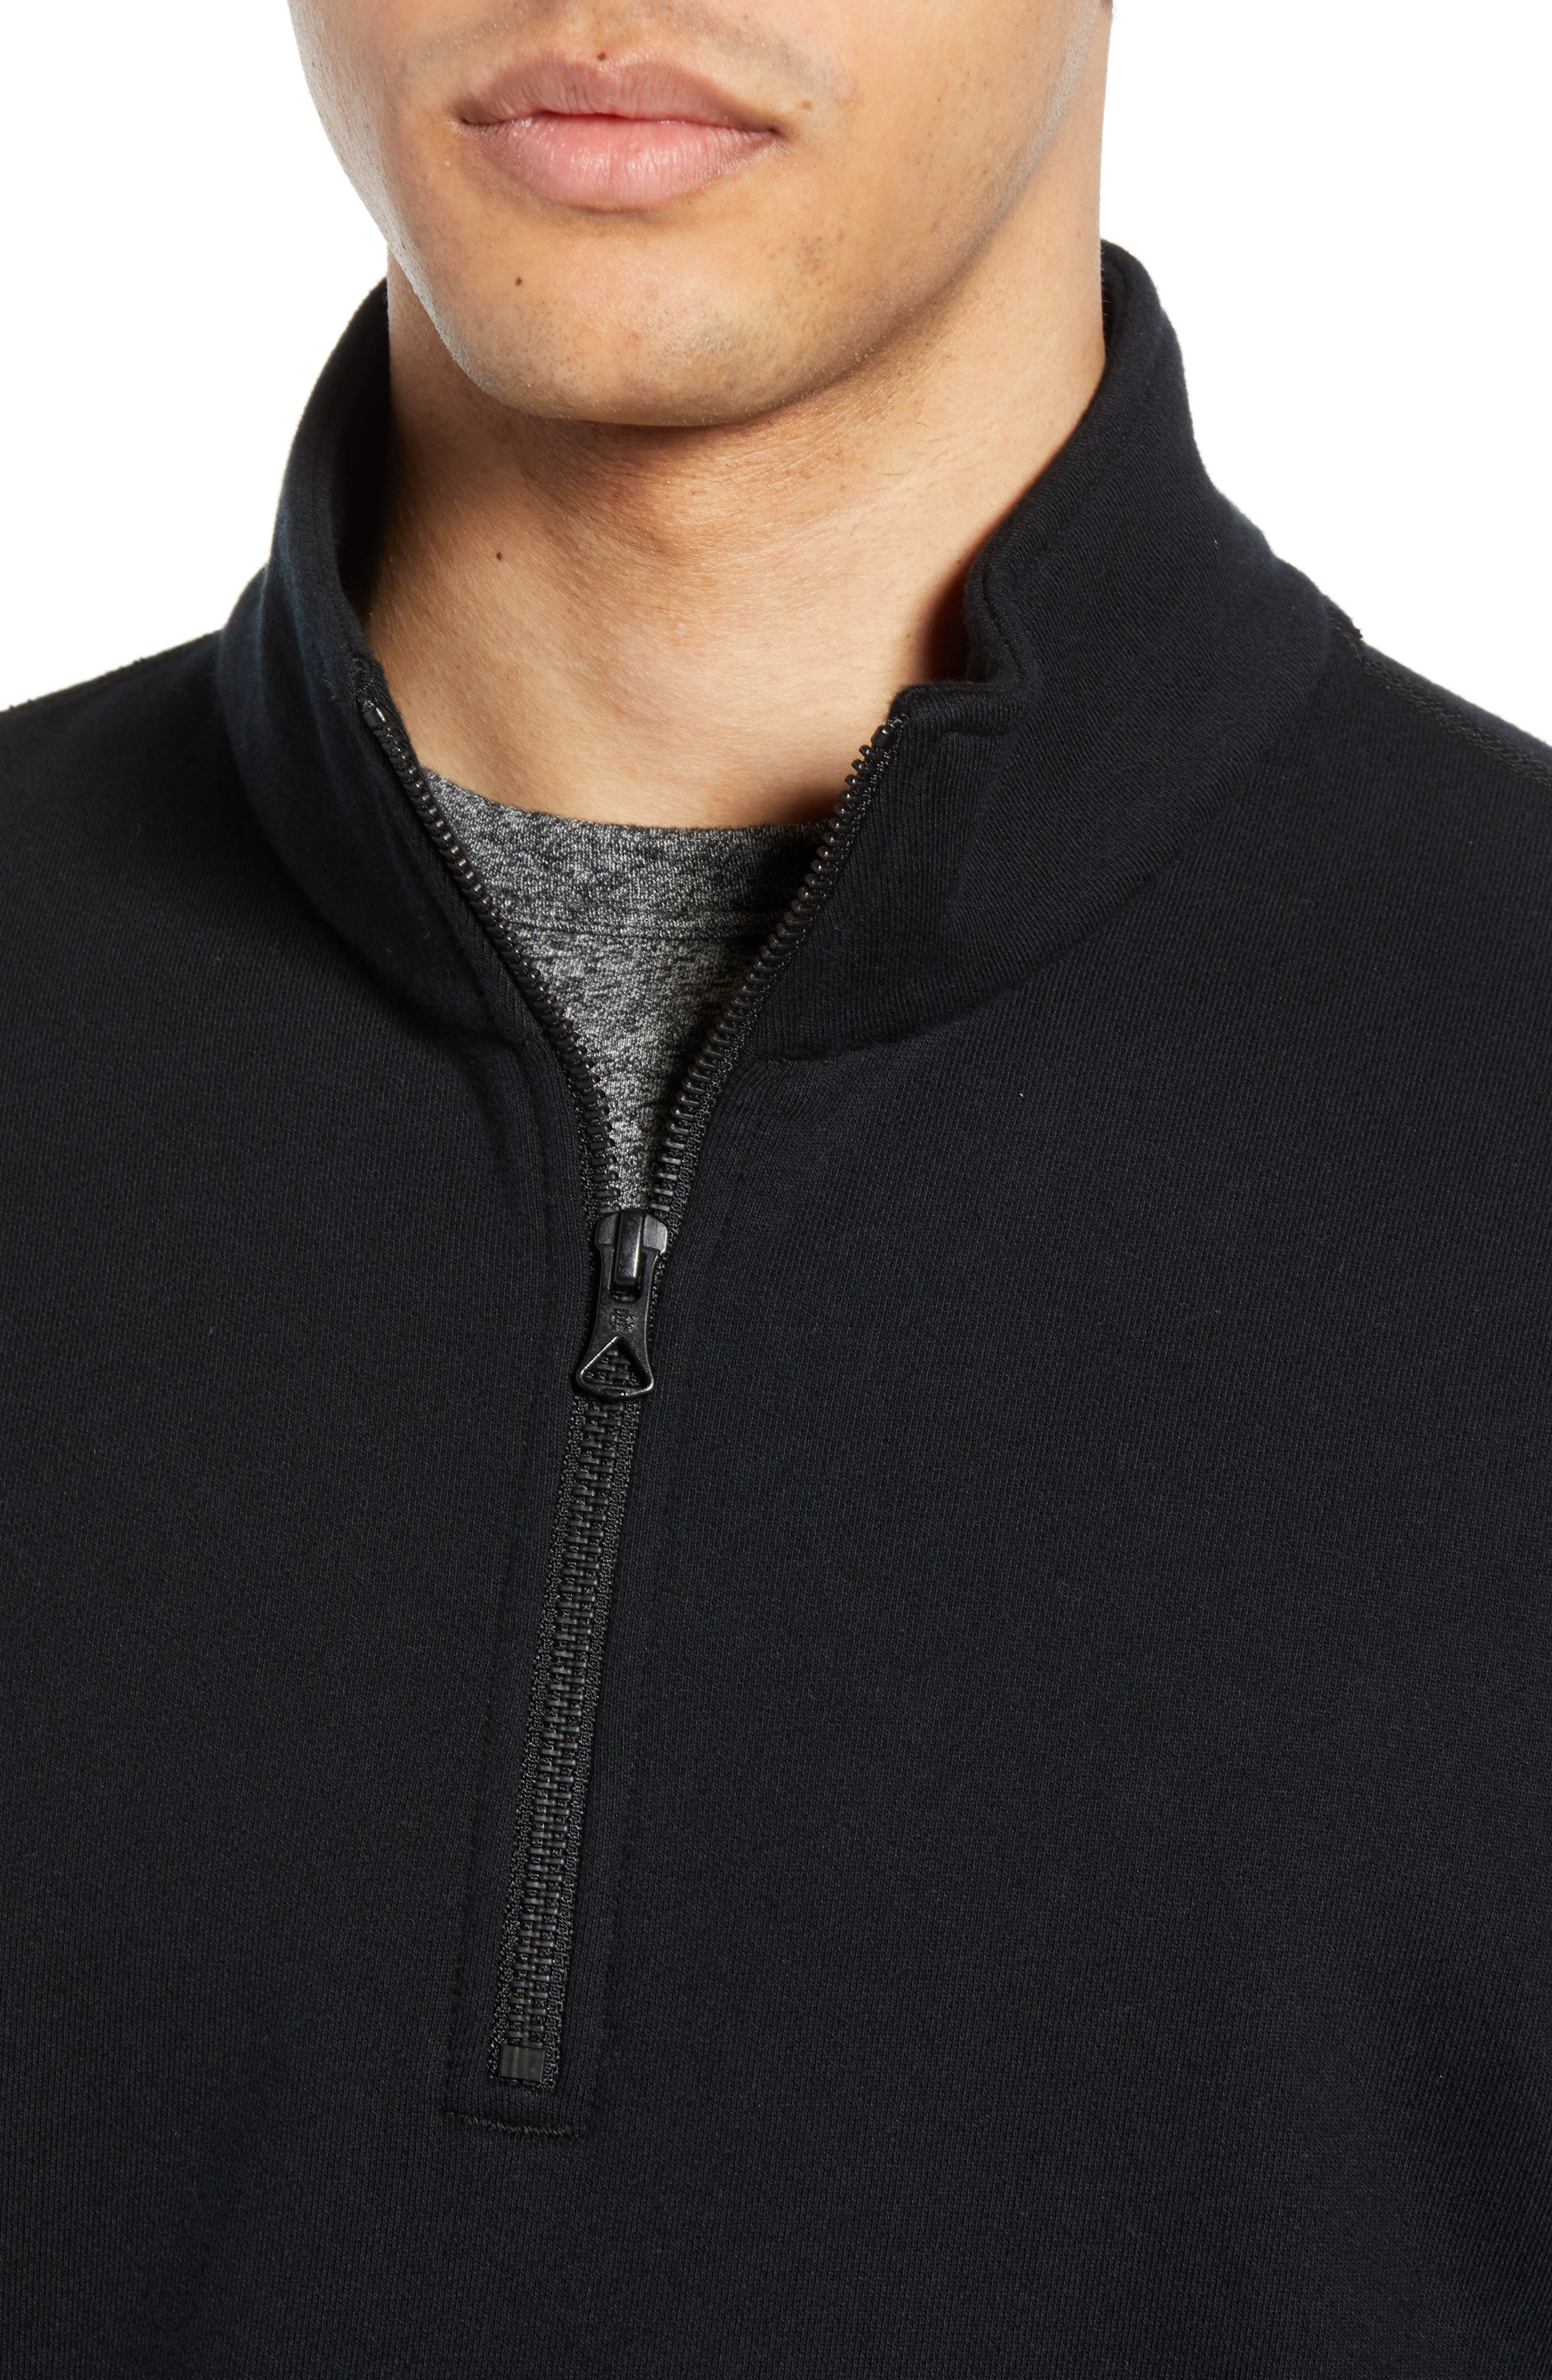 REIGNING CHAMP, Half Zip Pullover, Alternate thumbnail 4, color, 001